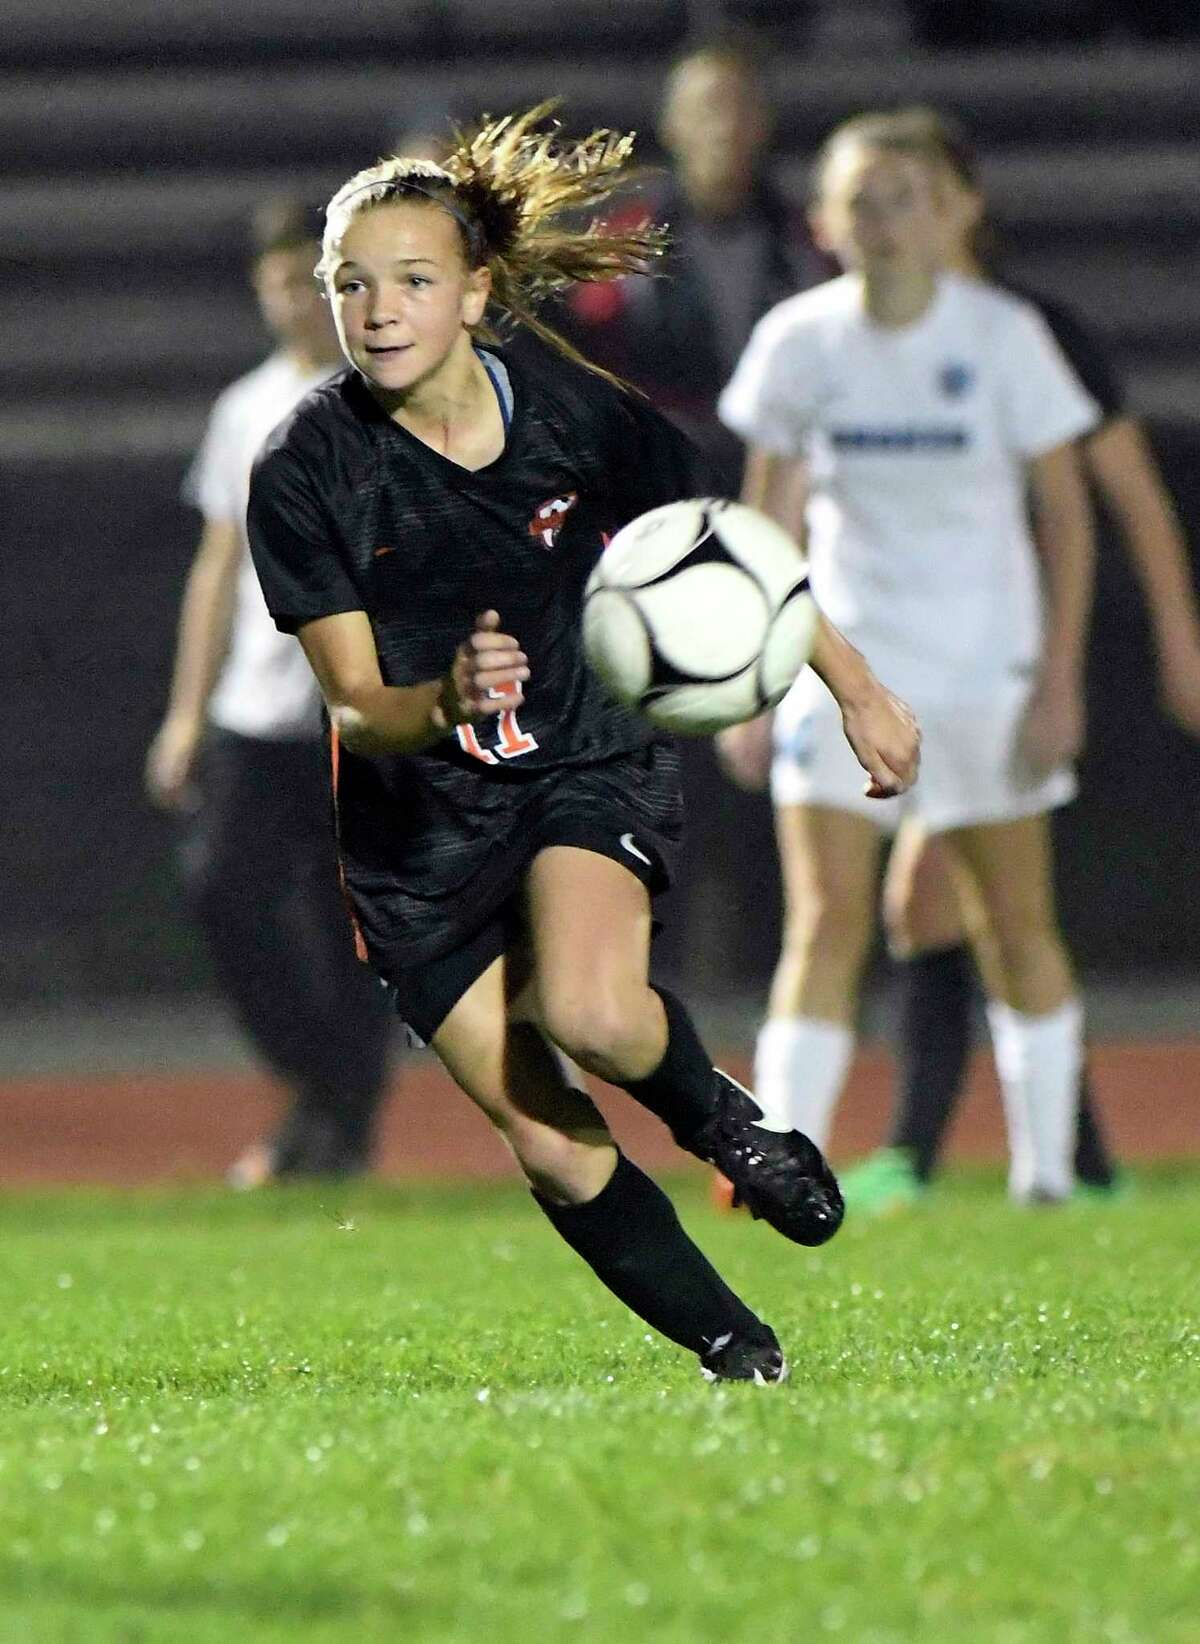 Bethlehem's Claire Hutton (11) moves the ball against Shaker during a Section II High School girls soccer game Thursday, Oct. 4, 2018, in Delmar, N.Y. (Hans Pennink / Special to the Times Union)